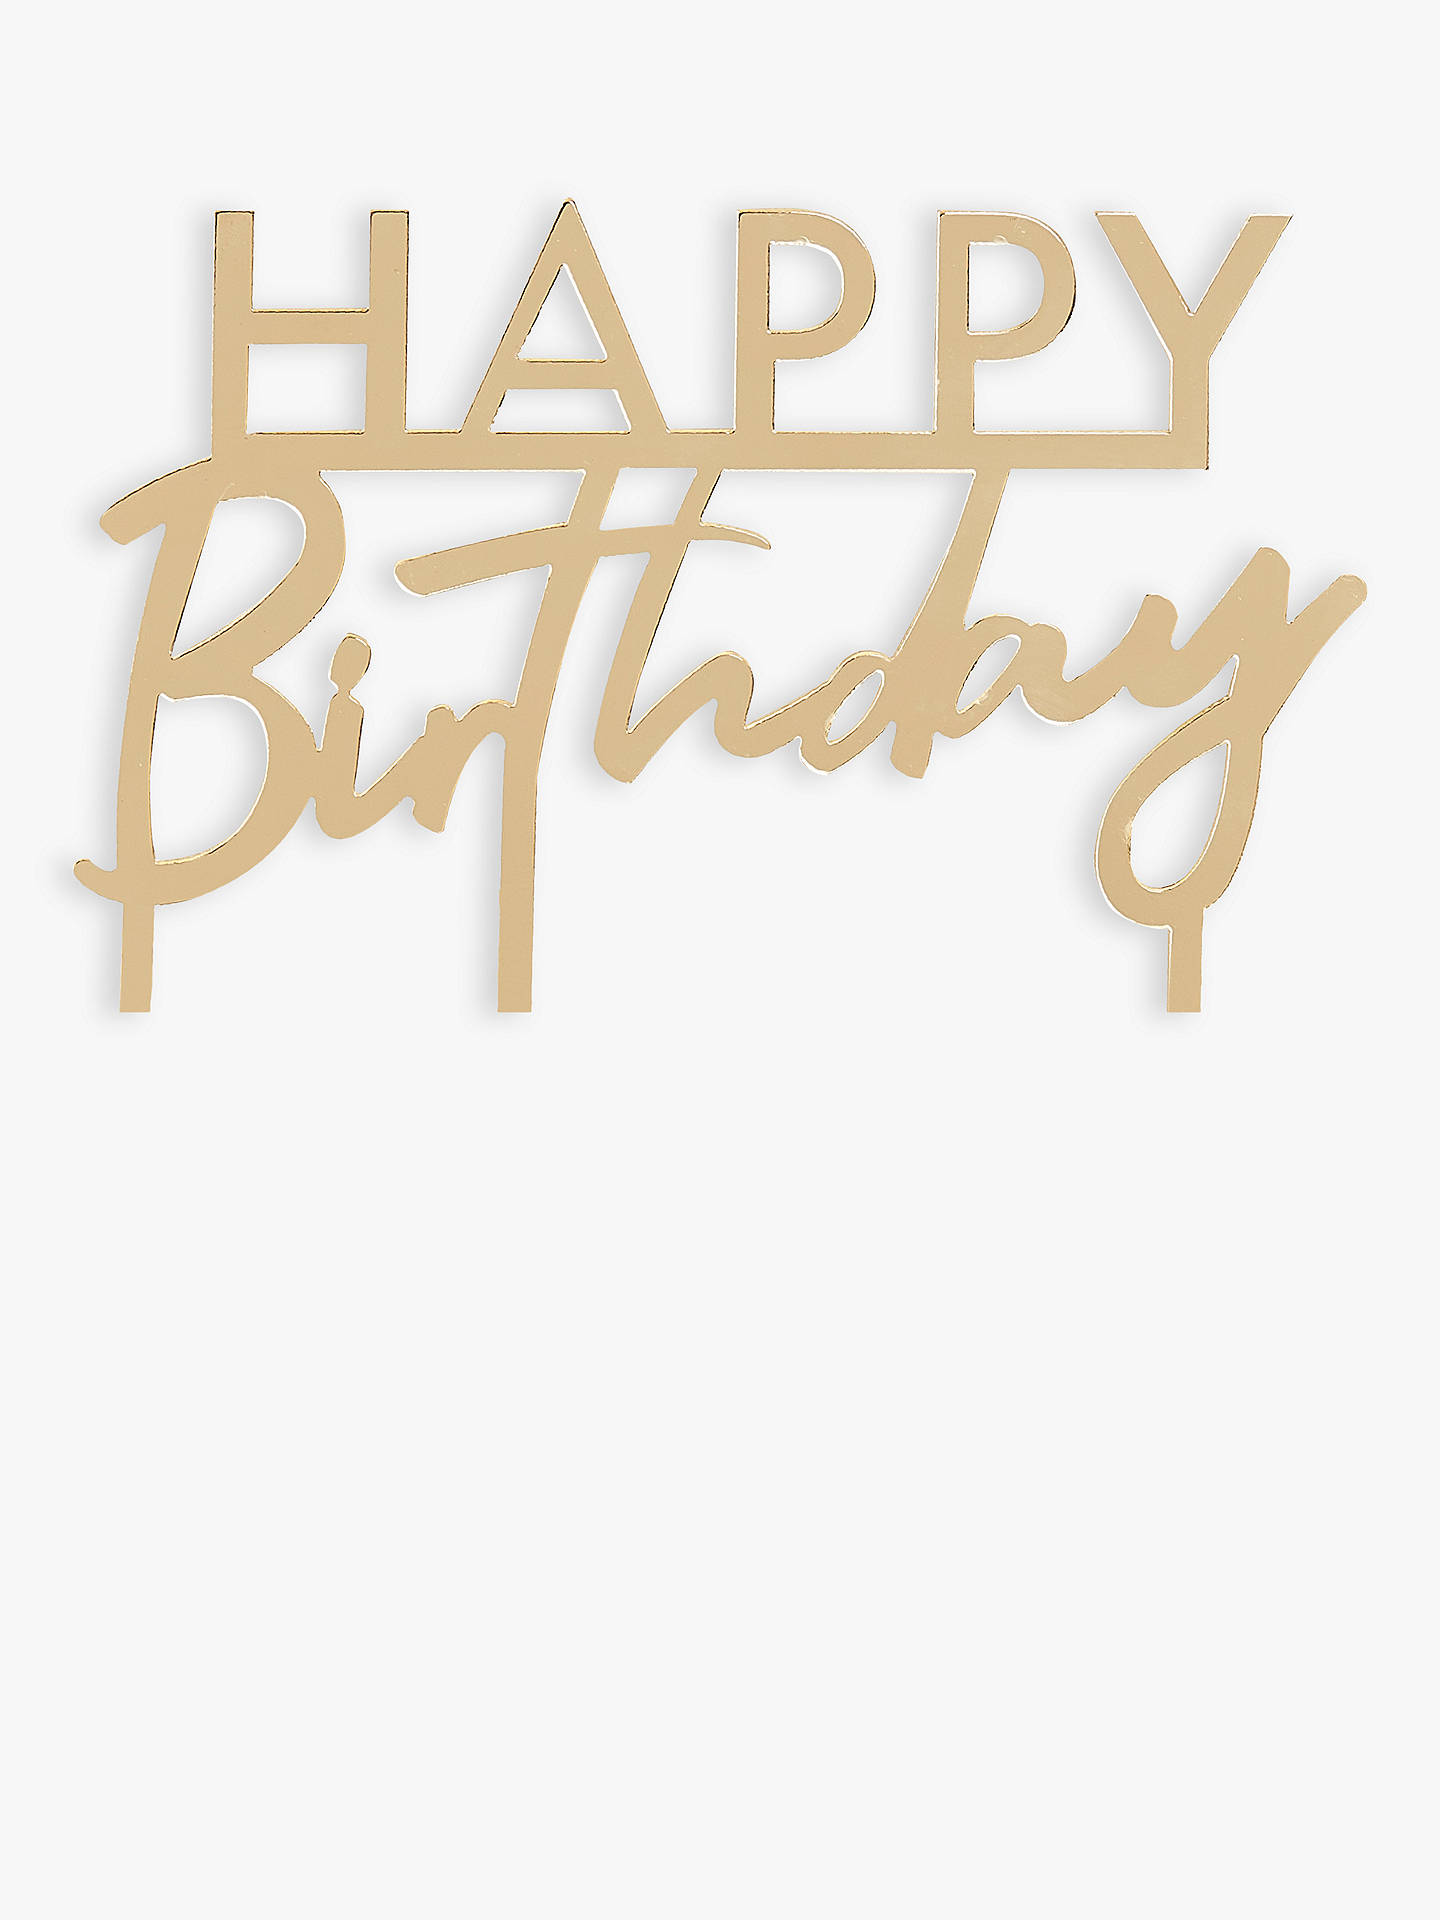 Marvelous Ginger Ray Gold Happy Birthday Cake Topper At John Lewis Partners Funny Birthday Cards Online Inifofree Goldxyz